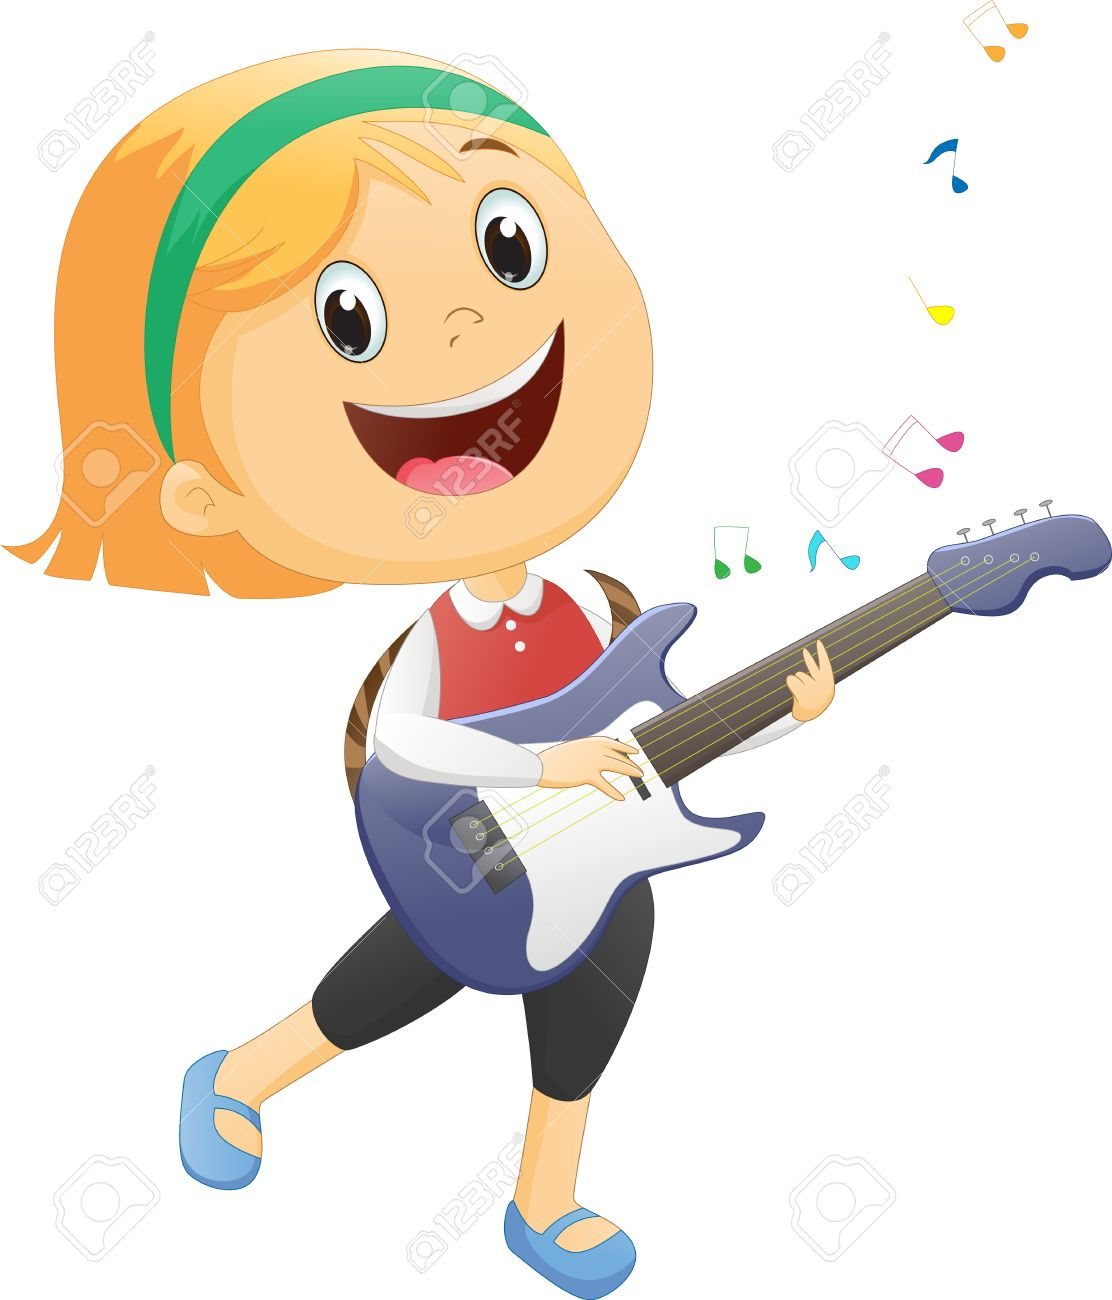 Girl playing guitar clipart 8 » Clipart Station.